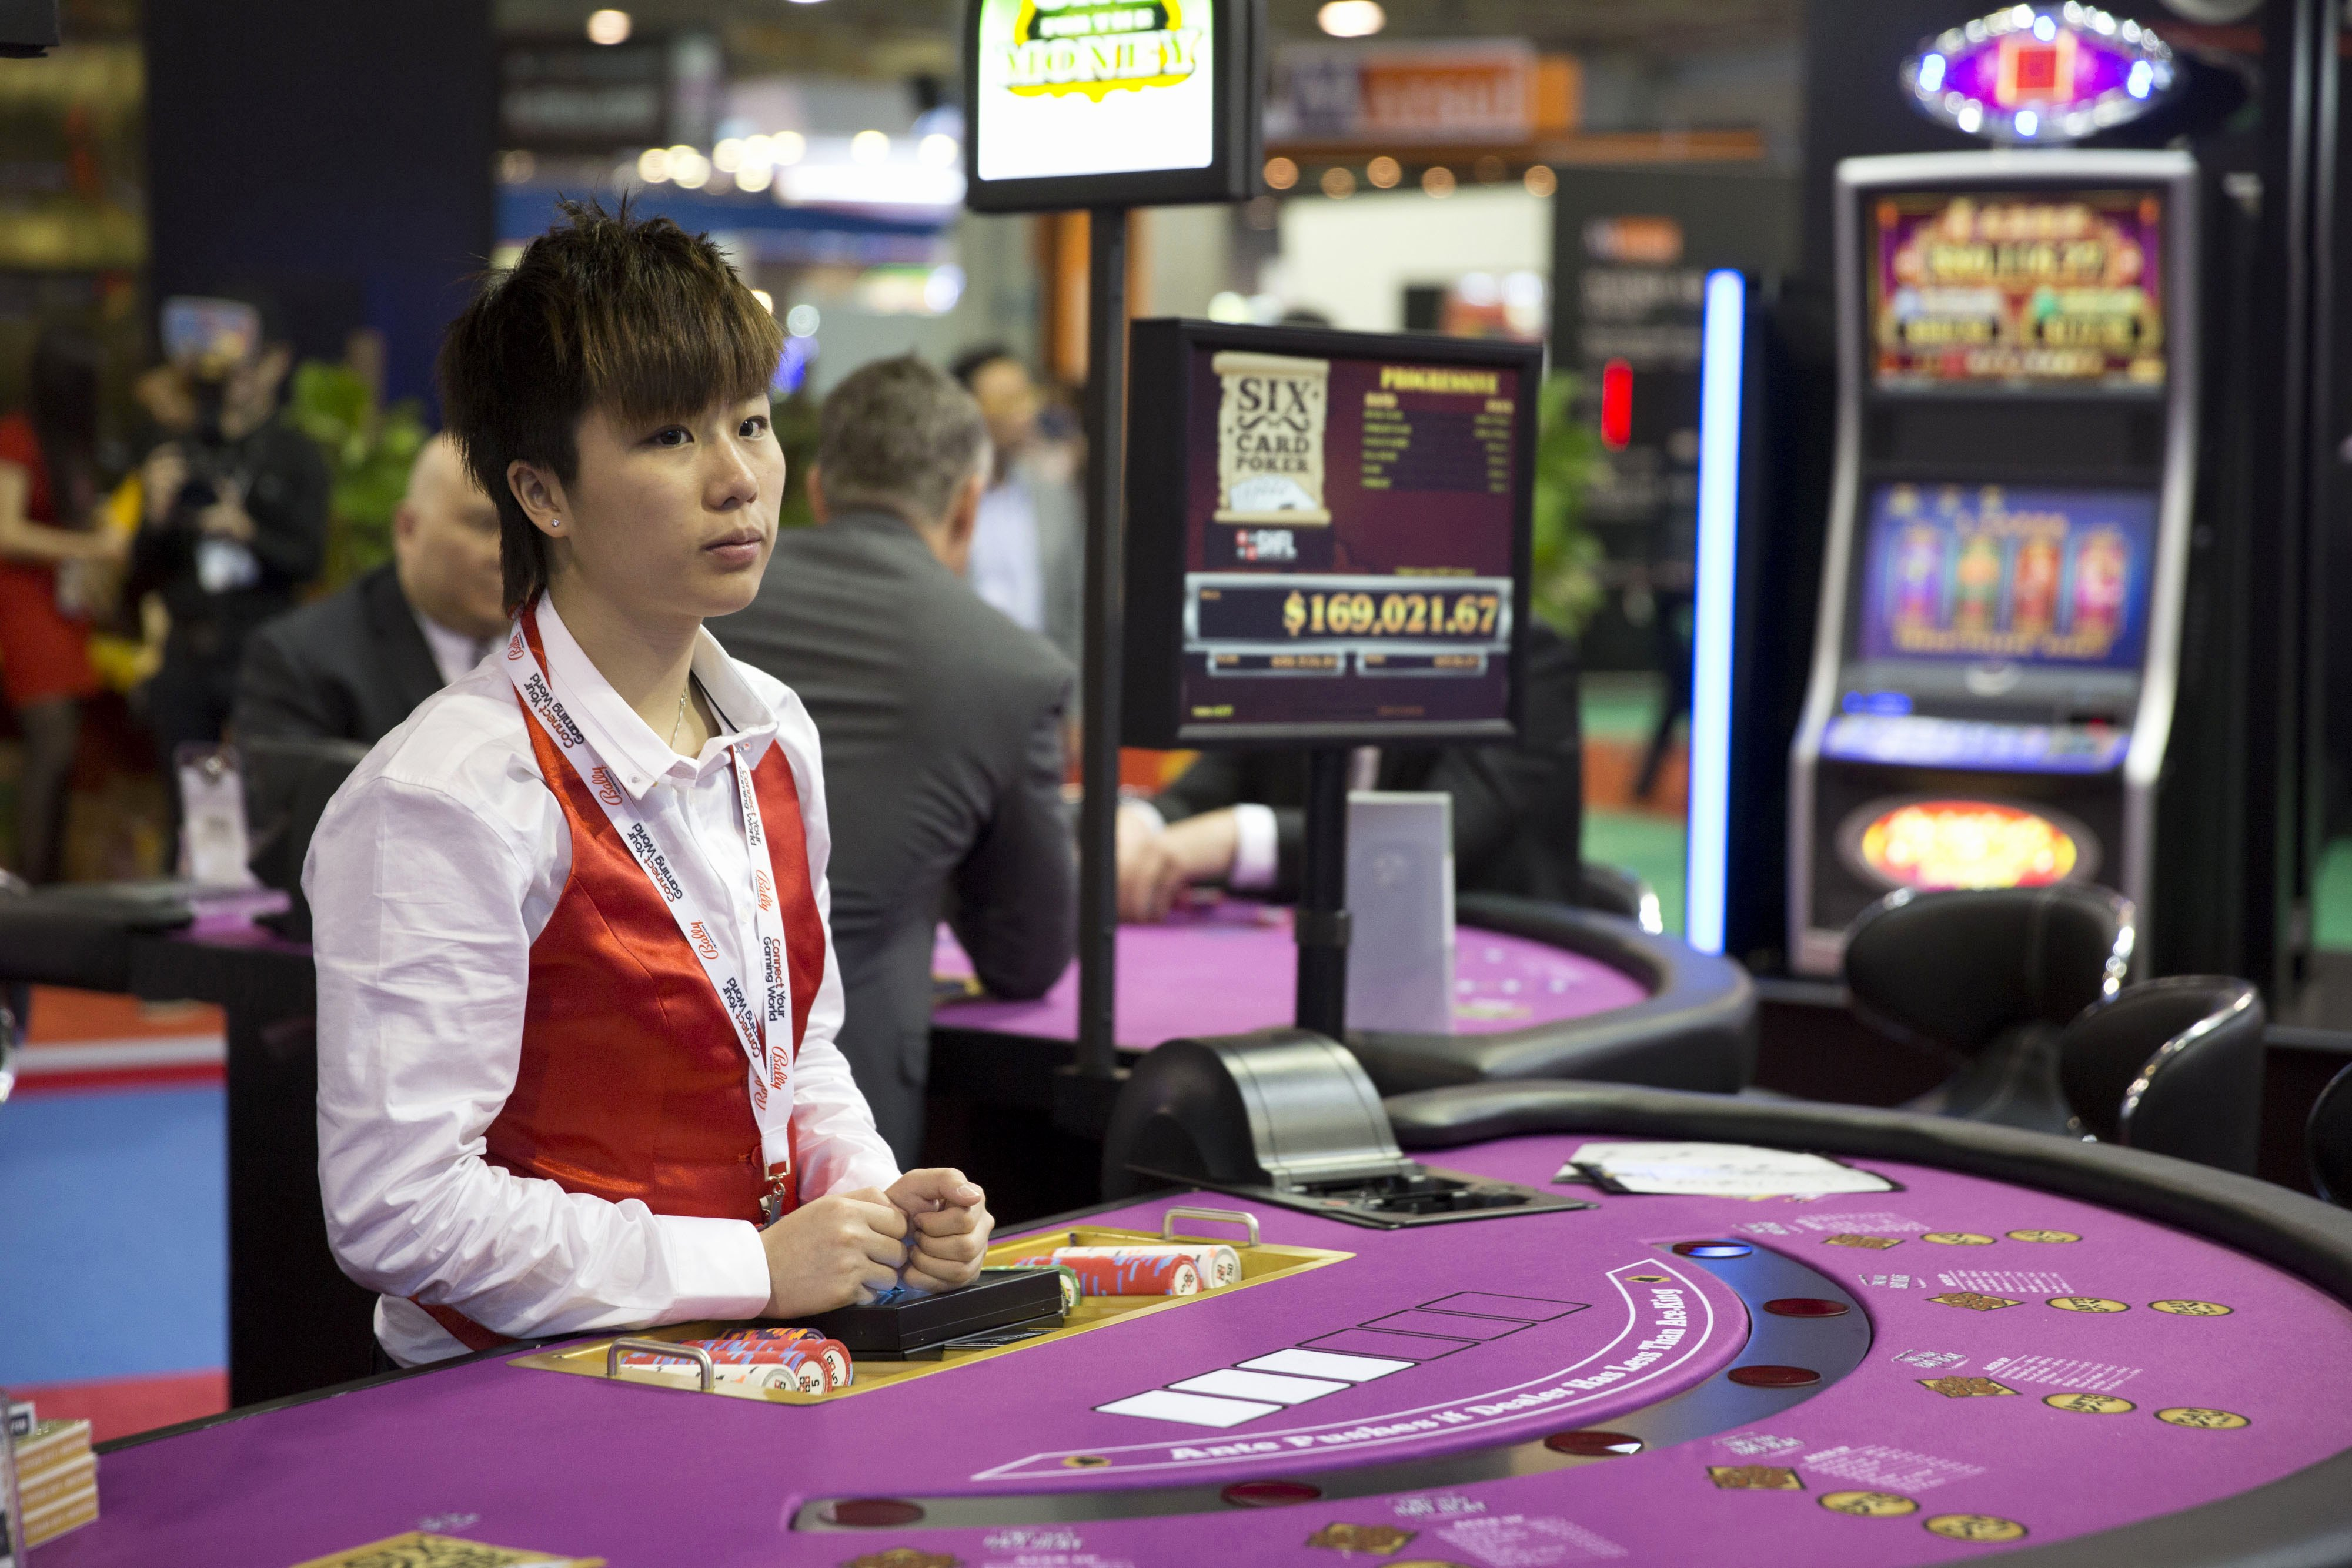 Macau Casino Employees Less Satisfied in Workplace